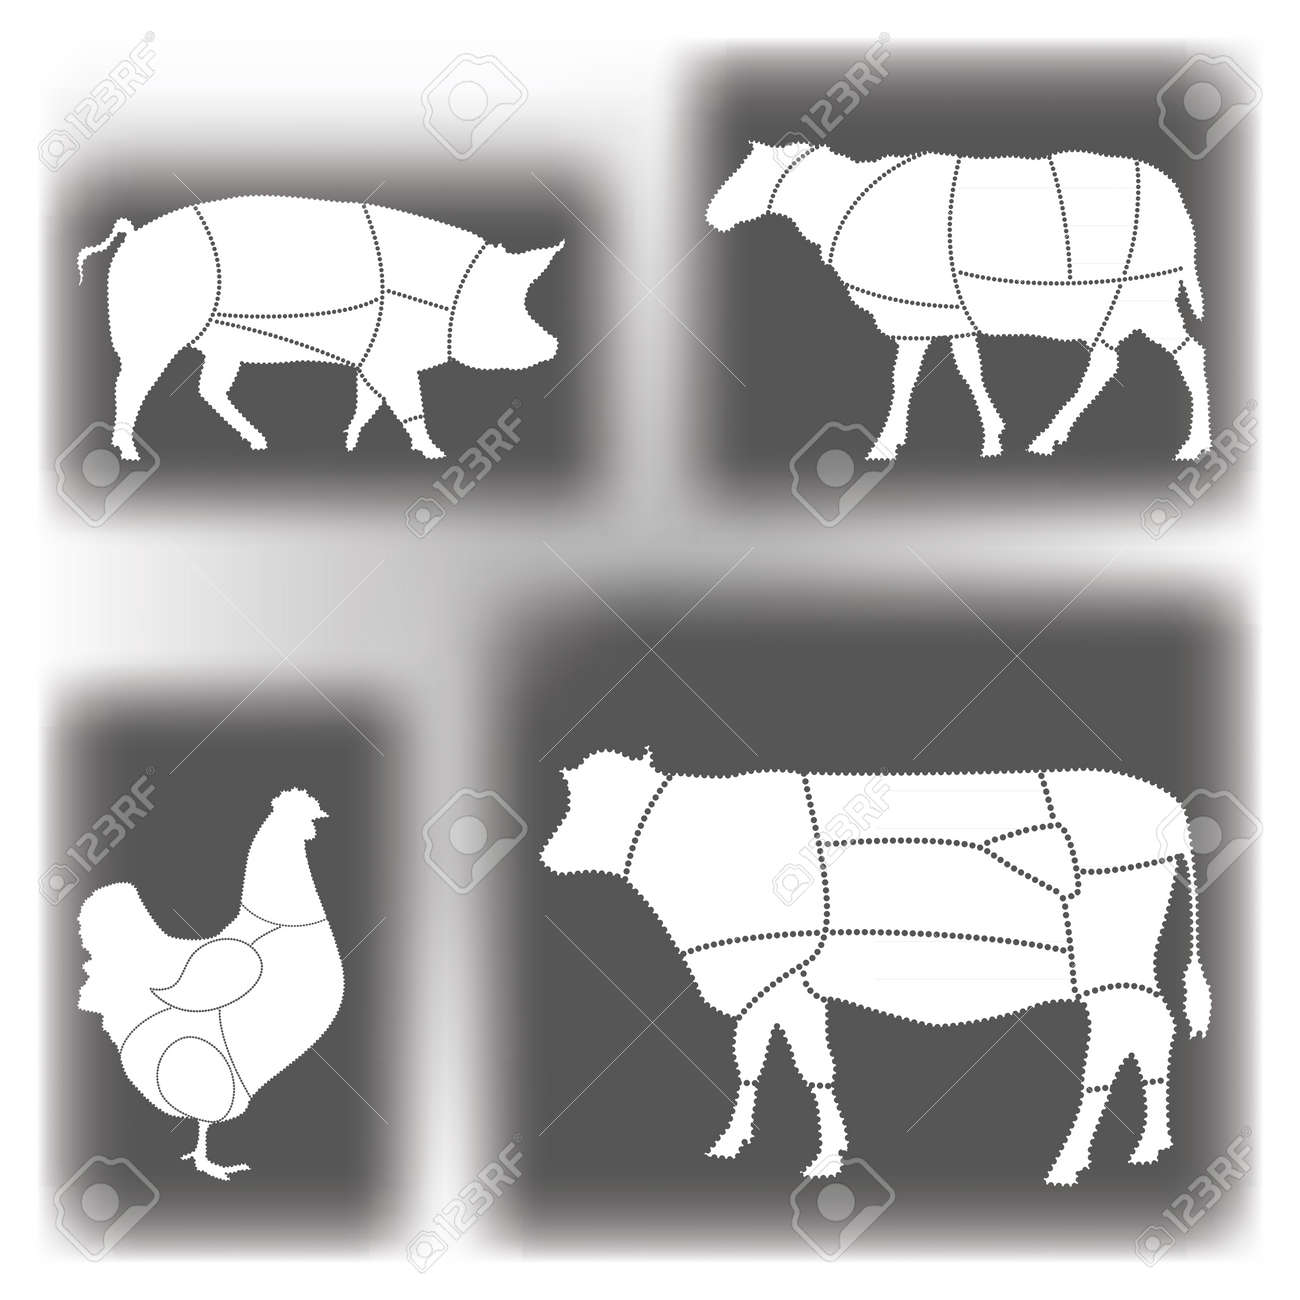 Blank Diagram Of Meat Cuts Wiring Diagrams Isolatedvoltagesensor Powersupplycircuit Circuit Royalty Free Cliparts Vectors And Stock Illustration Rh 123rf Com Beef Chart